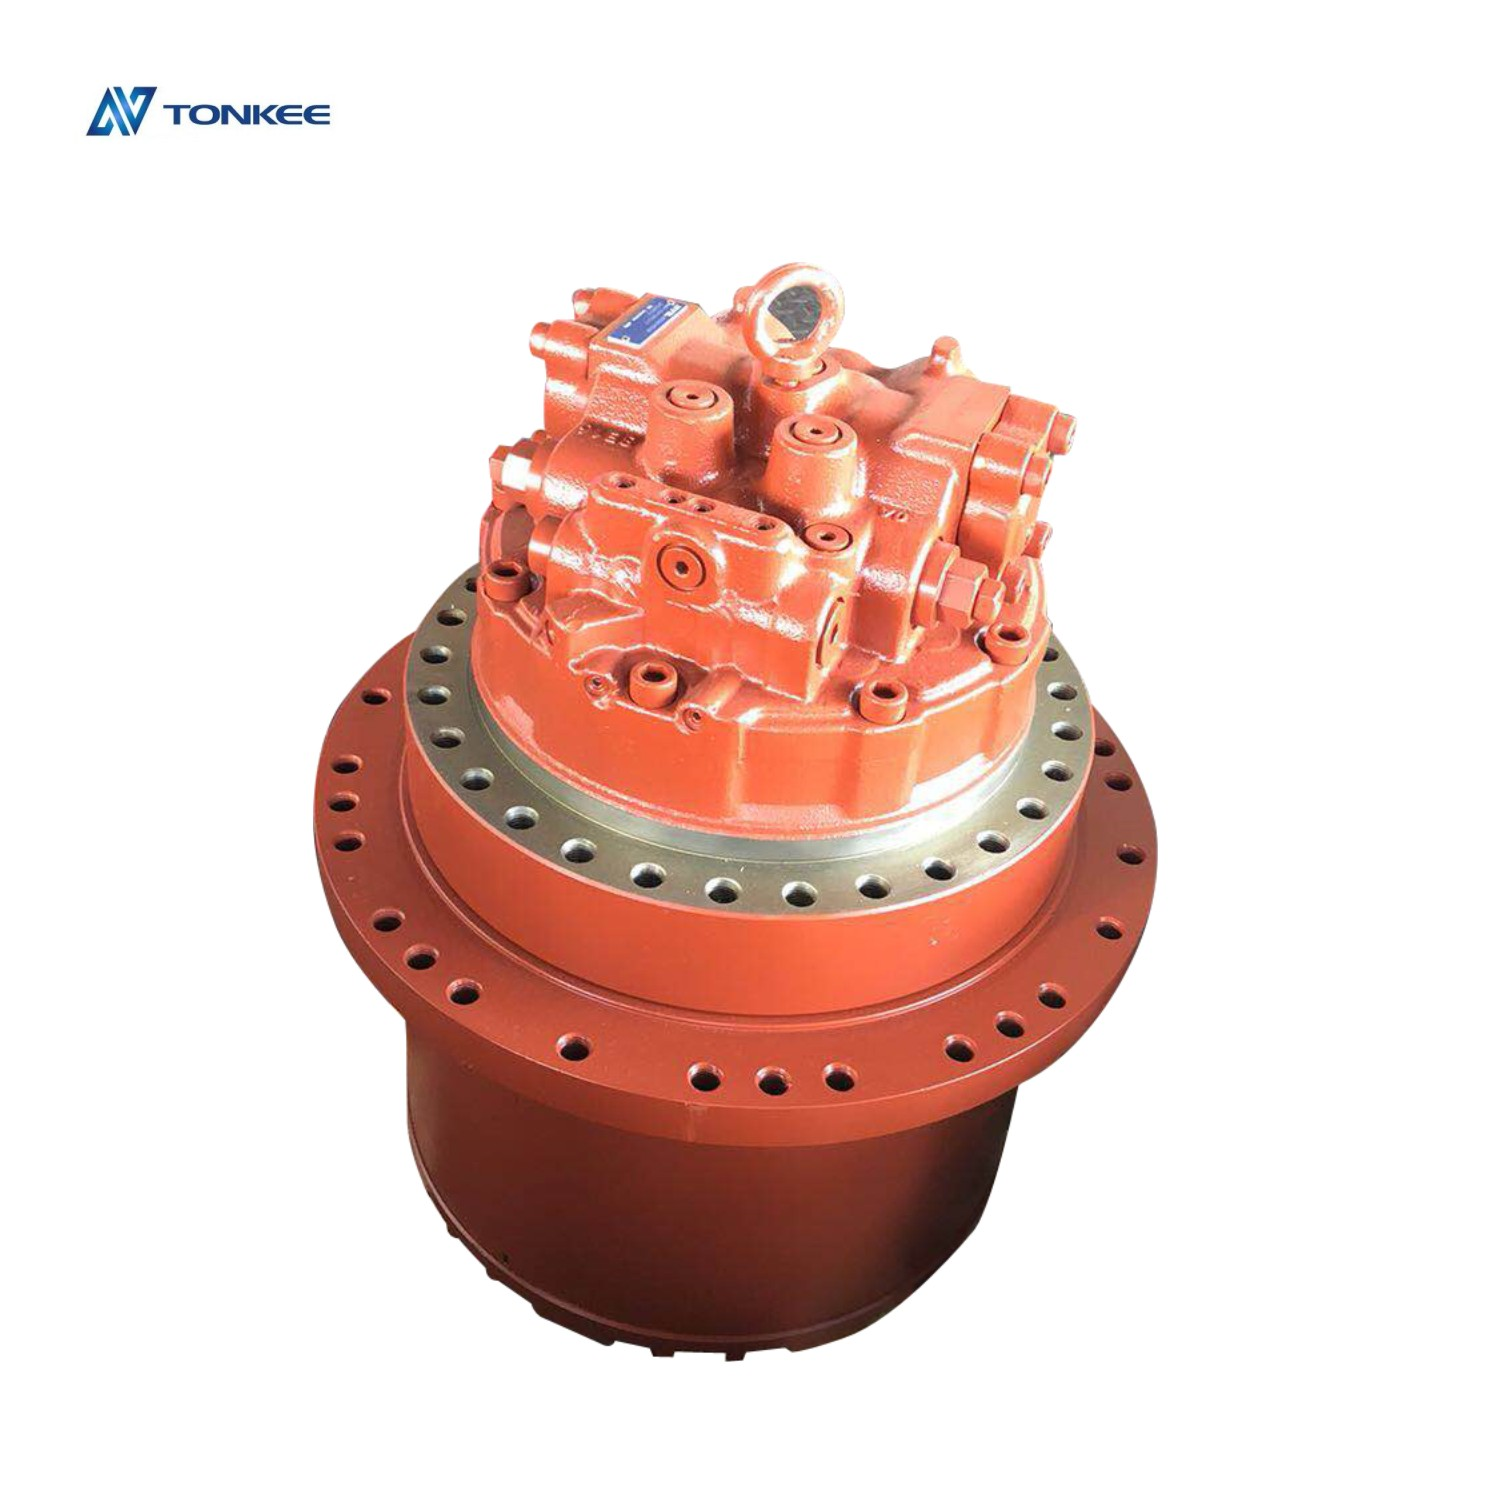 KYB MAG170VP-3800G-10 final drive group SY215 SK200-8 KYB MAG170VP-3800 travel motor assy for KOBELCO SANY excavation